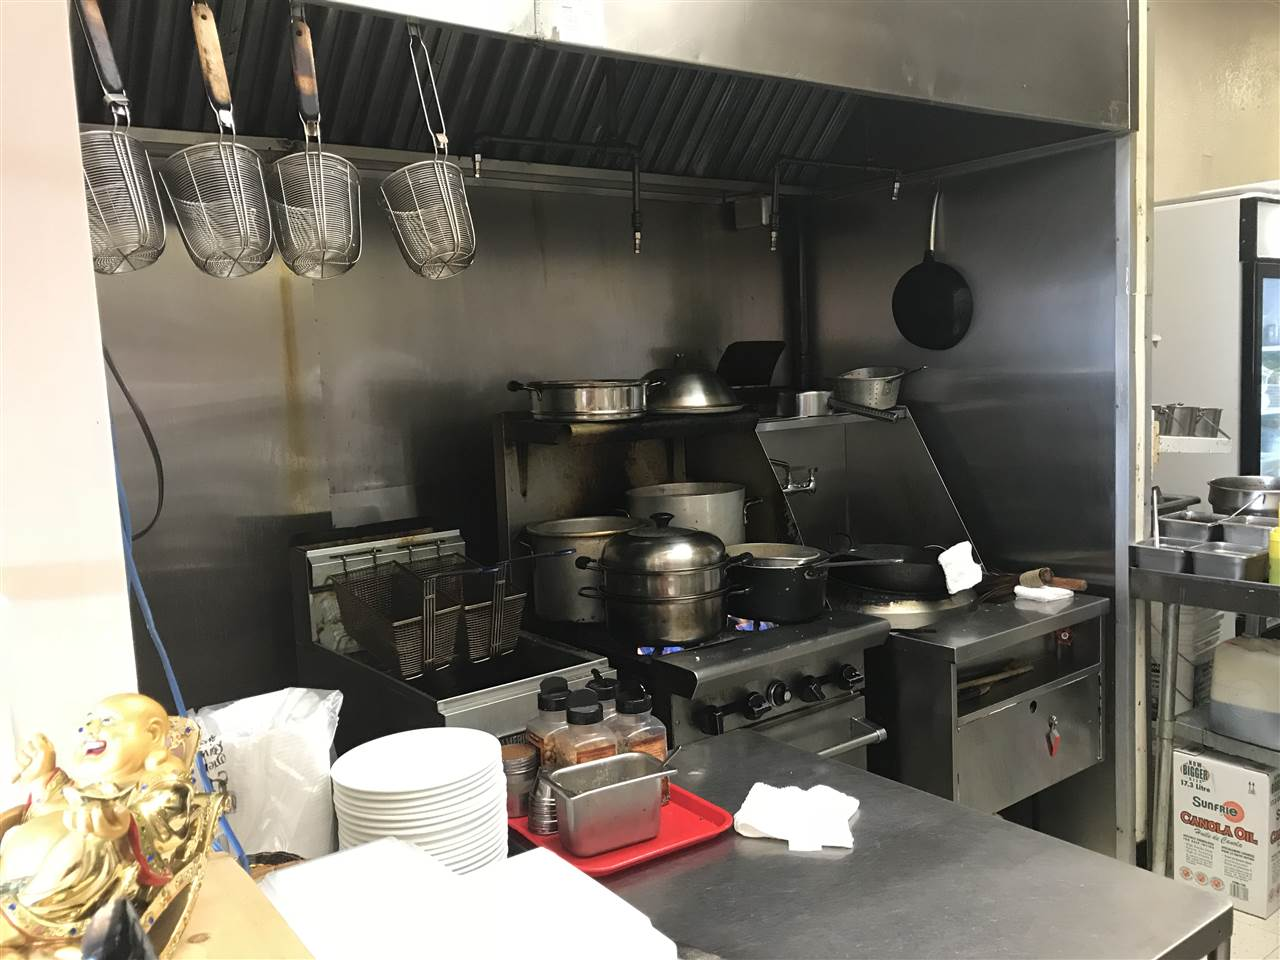 FANTASTIC OPPORTUNITY: Established Chinese Restaurant business for sale in wonderful Stevenston Village Location. 1000sq 36 seats, authentic Chinese food and westernized  Chinese food with loyal customer base and take out business. Very low over head costs + great lease & quality equipment. Currently open from 11am-9pm Tuesday off, lots of potential for lunch hours.